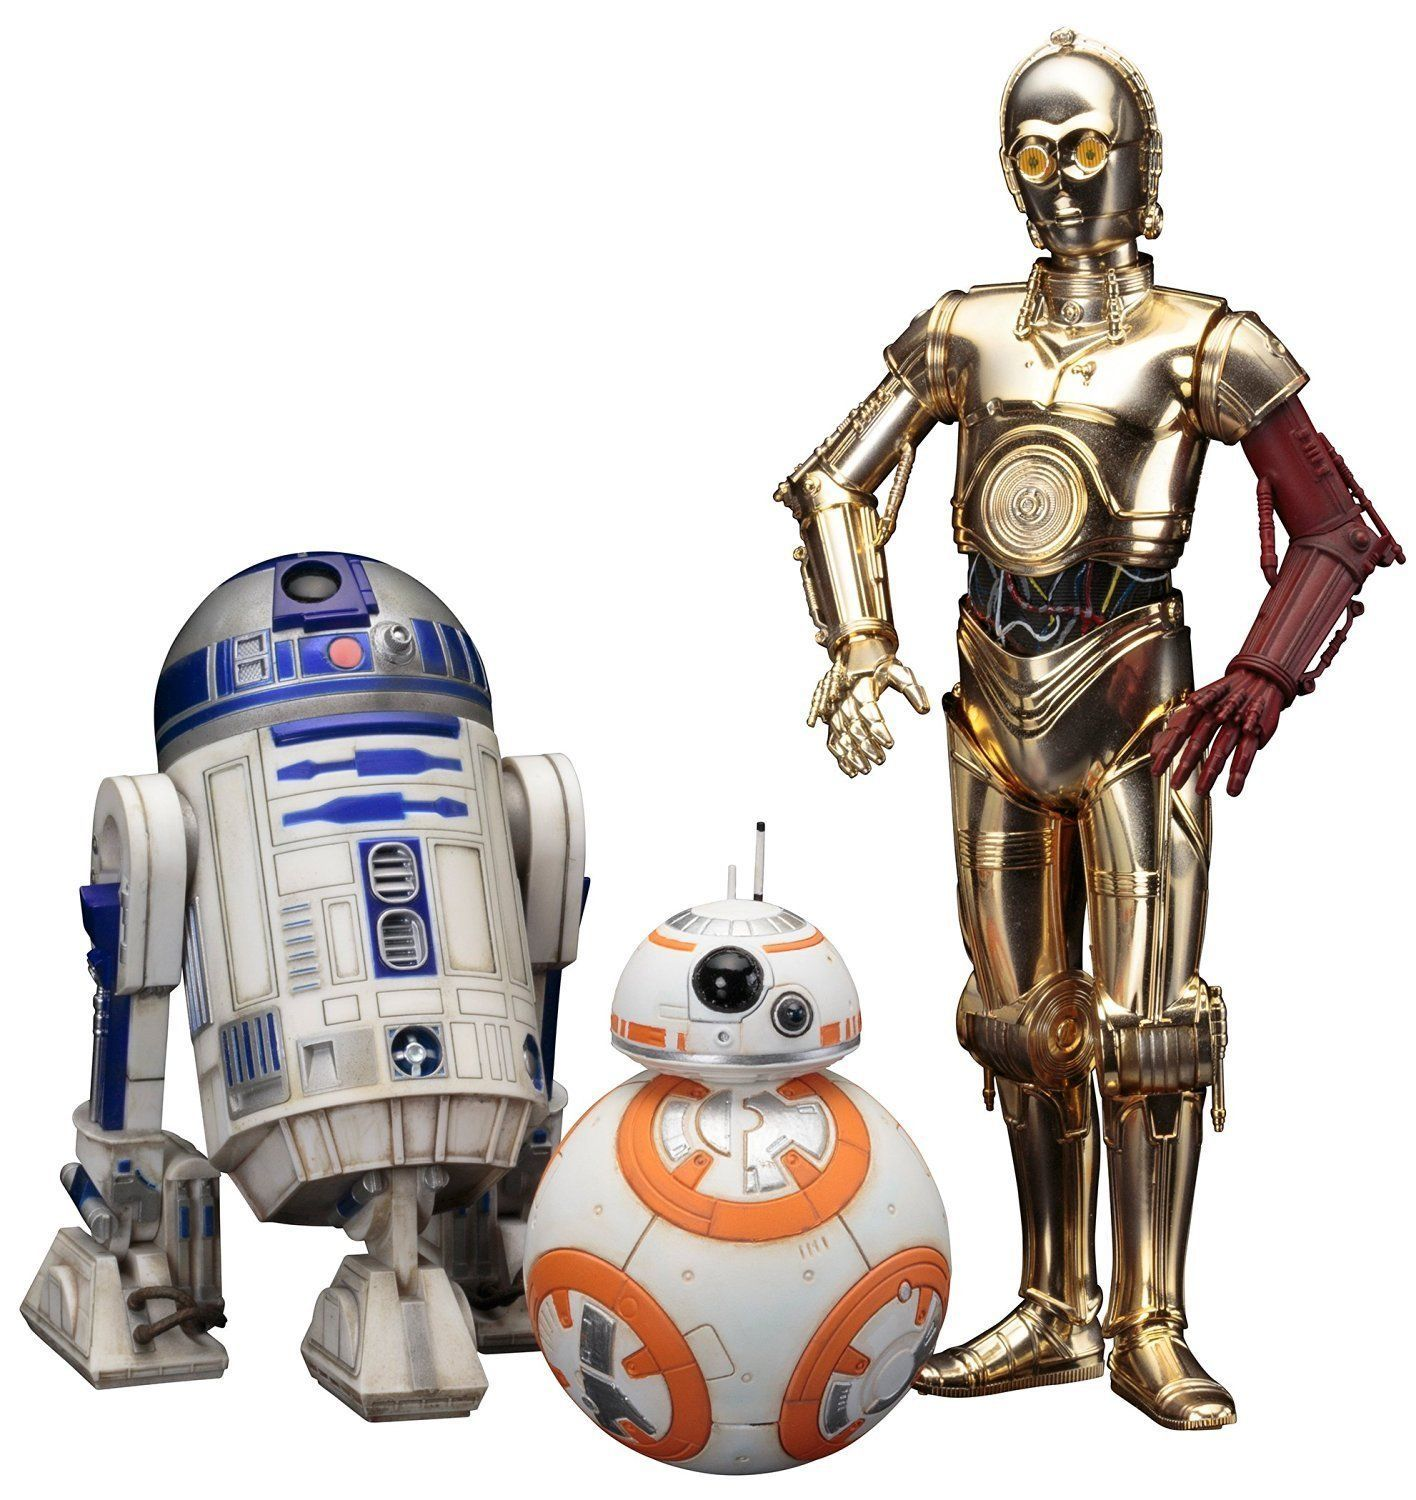 Image 0 of Star Wars:The Force Awakens C-3PO R2-D2 and BB-8 Artfx+ 1:10 Scale Statue Set